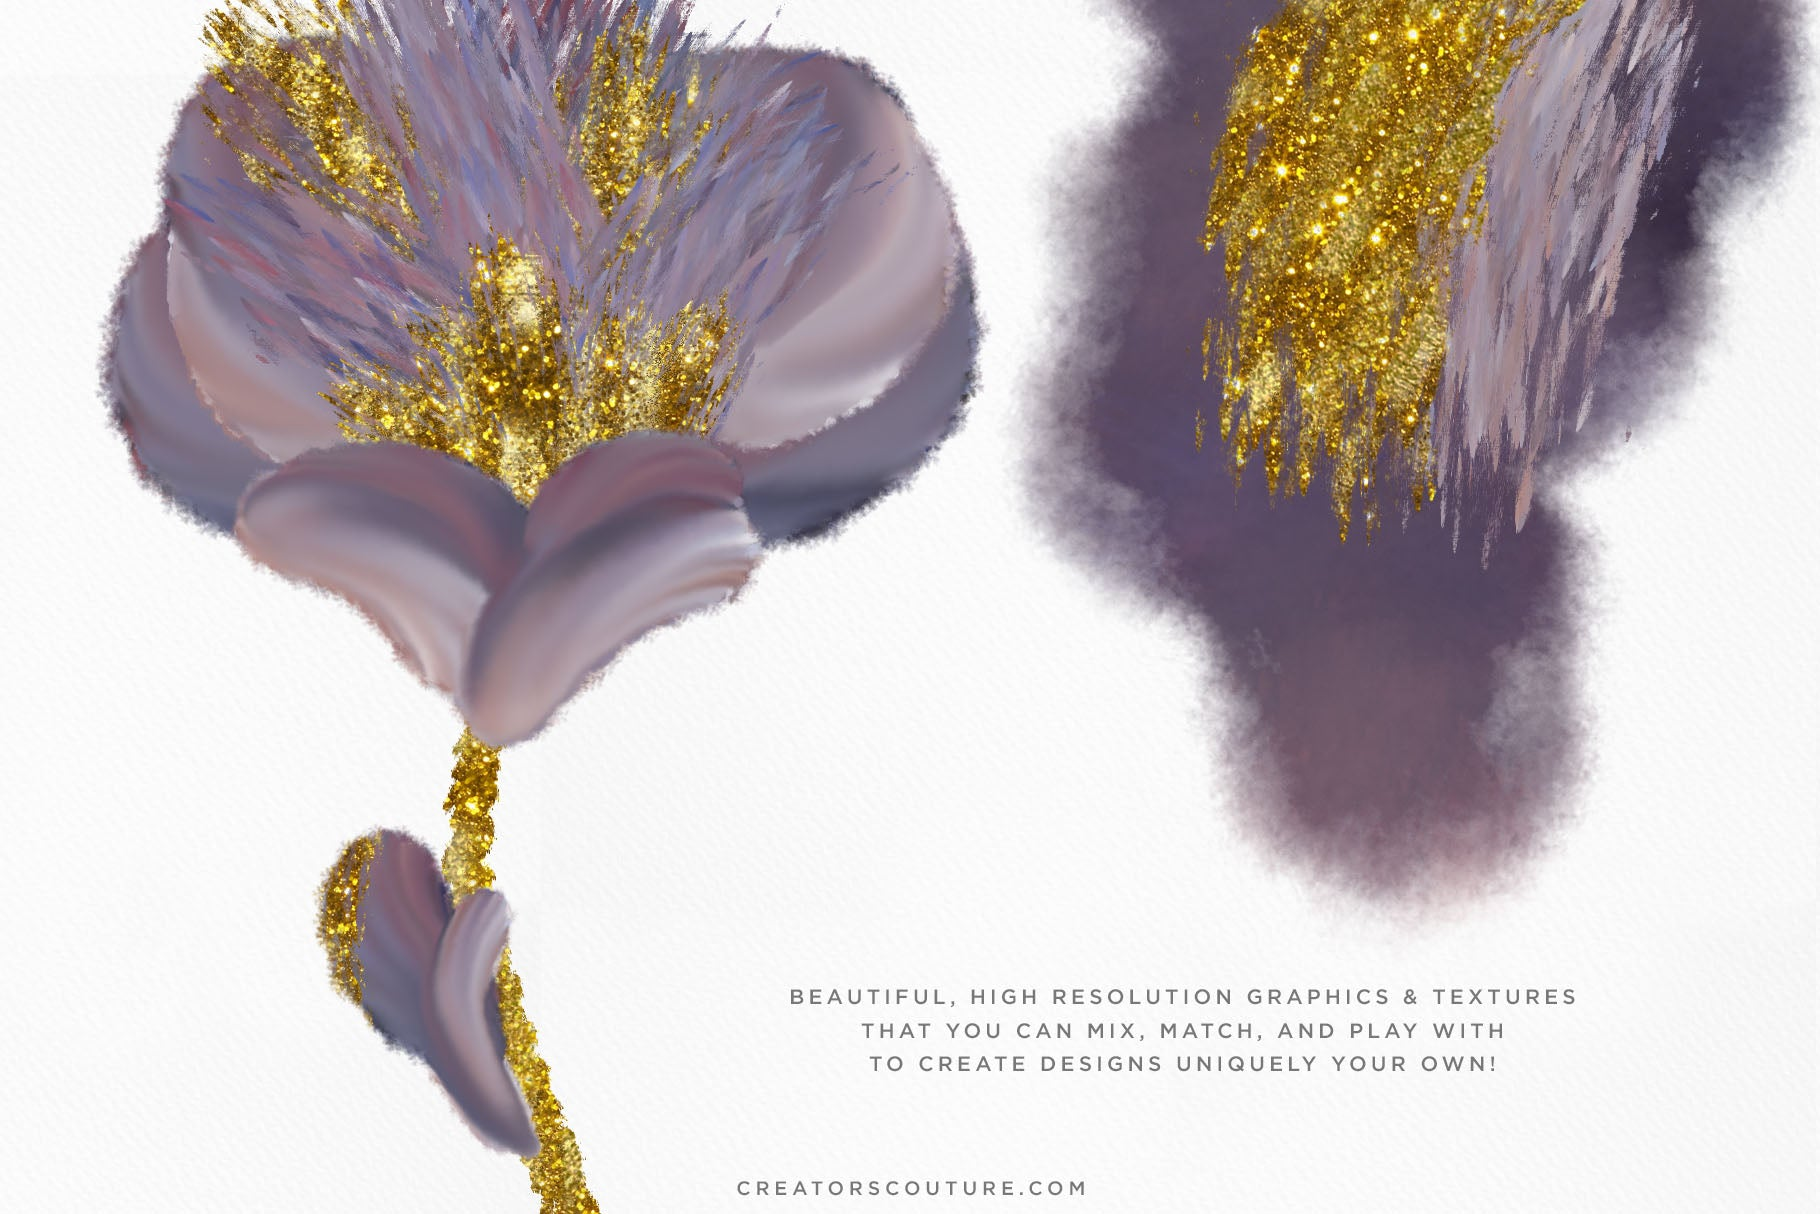 Sensational Sky Flower Illustrations with Wet Gold Accent - Creators Couture